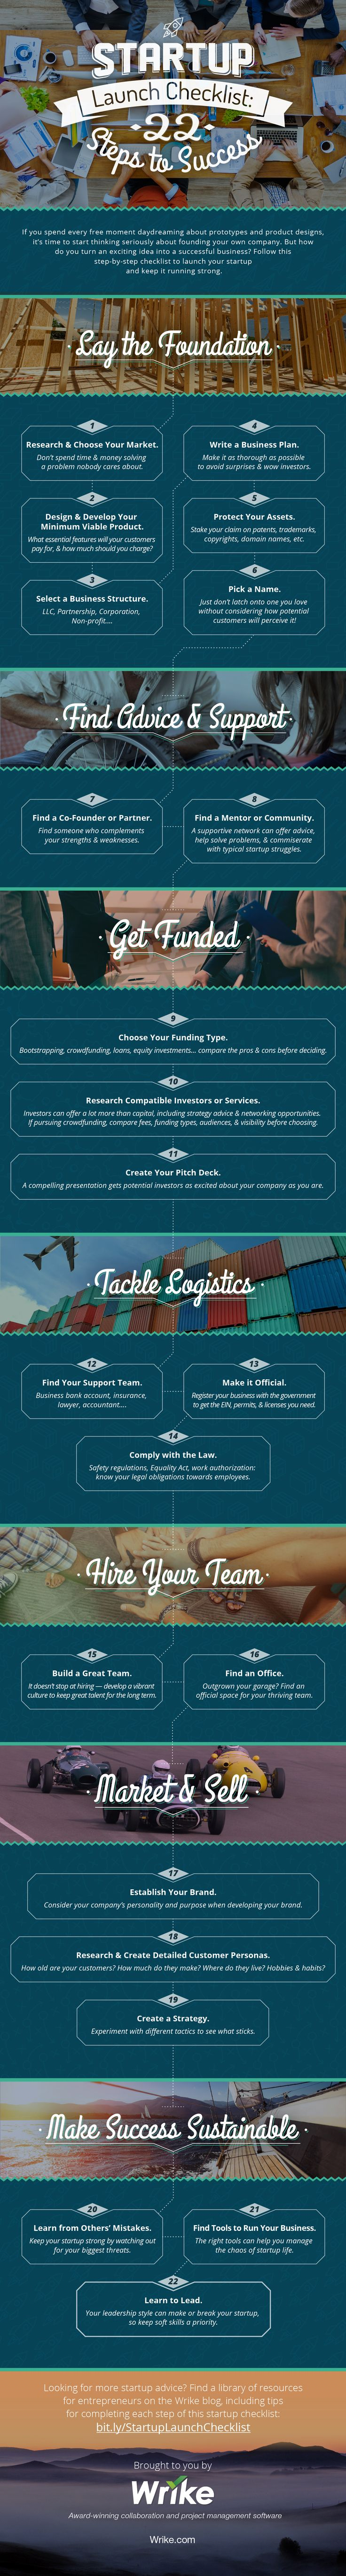 Infographic – Startup Launch Checklist: 22 Steps to Success.  If you need some help launching your startup, check out this awesome infographic for a step-by-step roadmap on how to go from idea to successful business.